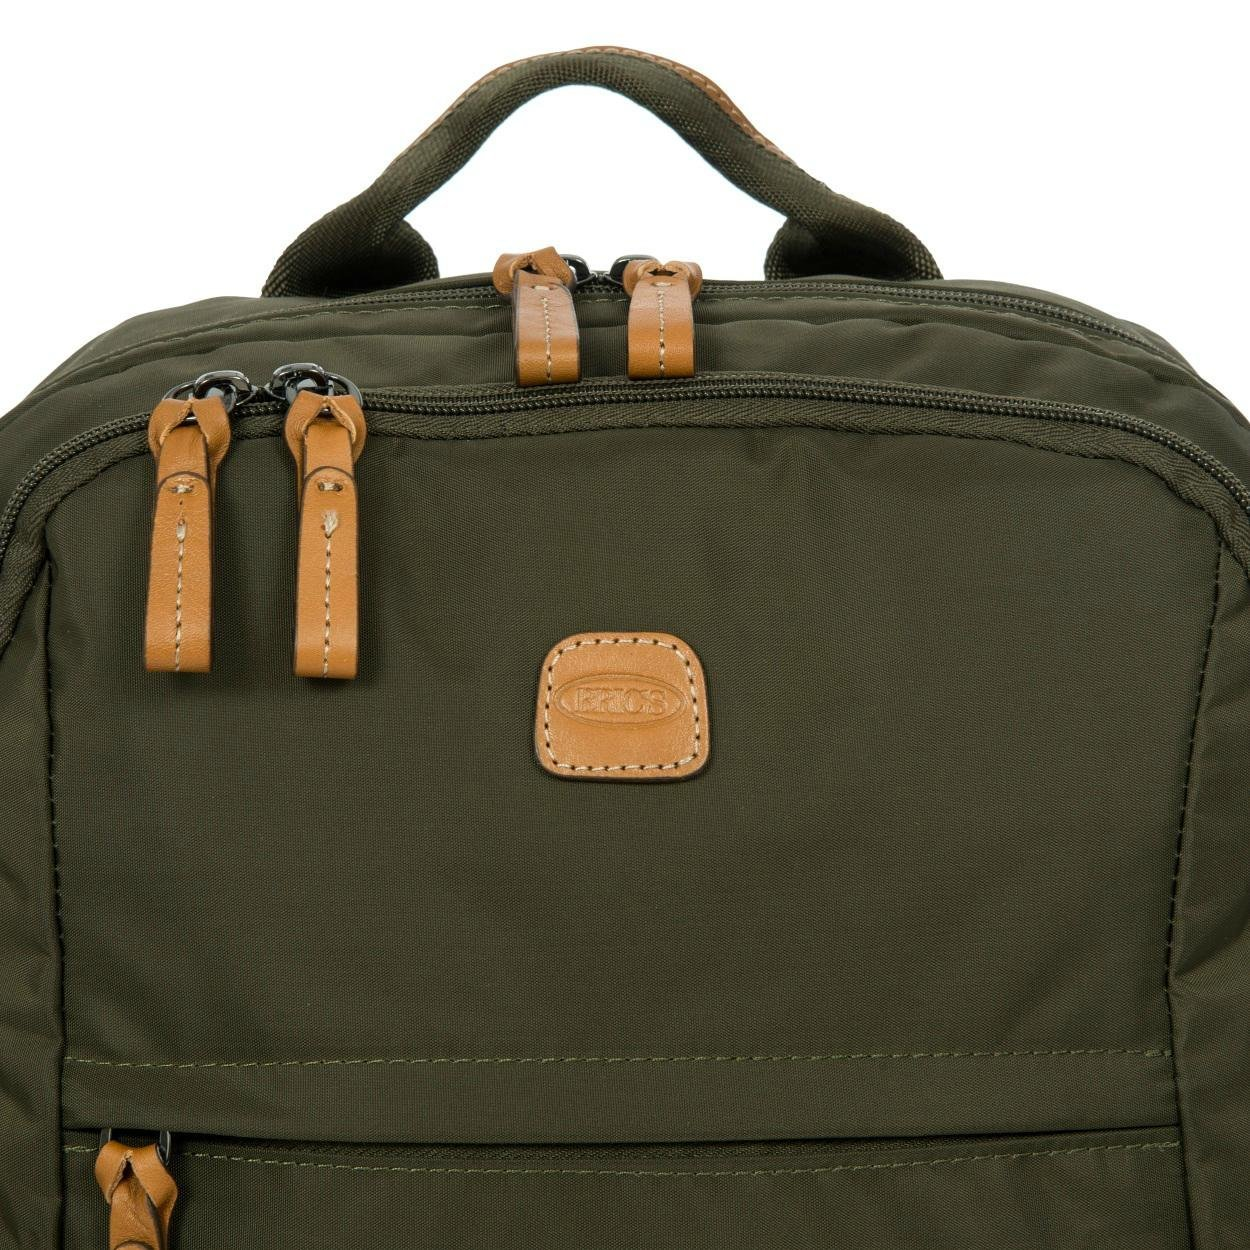 Bric's X-Bag/x-Travel 2.0 Nomad Laptop|Tablet Business Backpack, Navy, One Size by Bric's (Image #5)